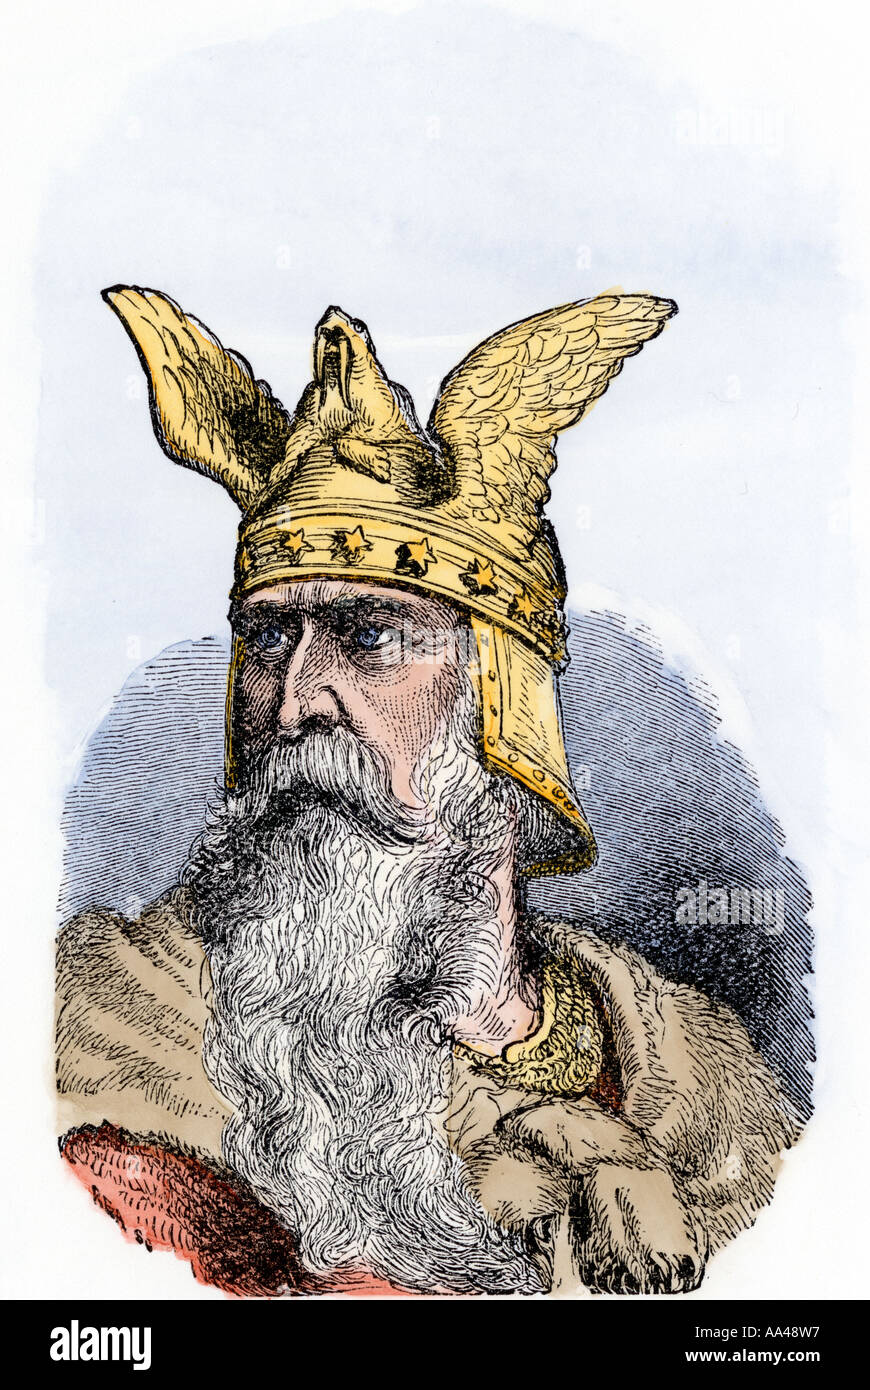 Norse sea king during the Viking era probably Olaf I. Hand-colored woodcut - Stock Image